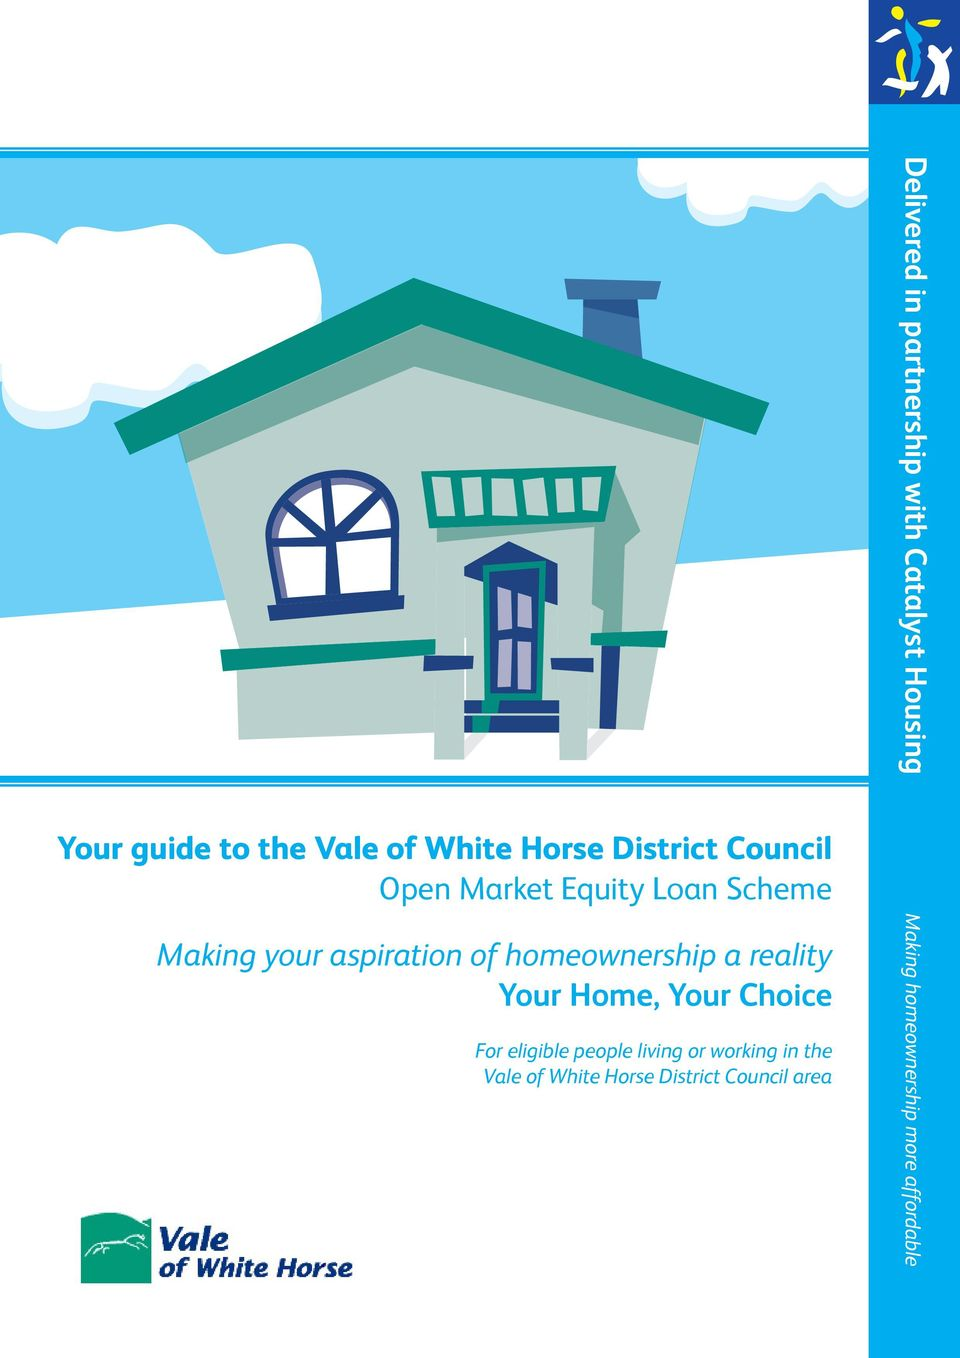 For eligible people living or working in the Vale of White Horse District Council